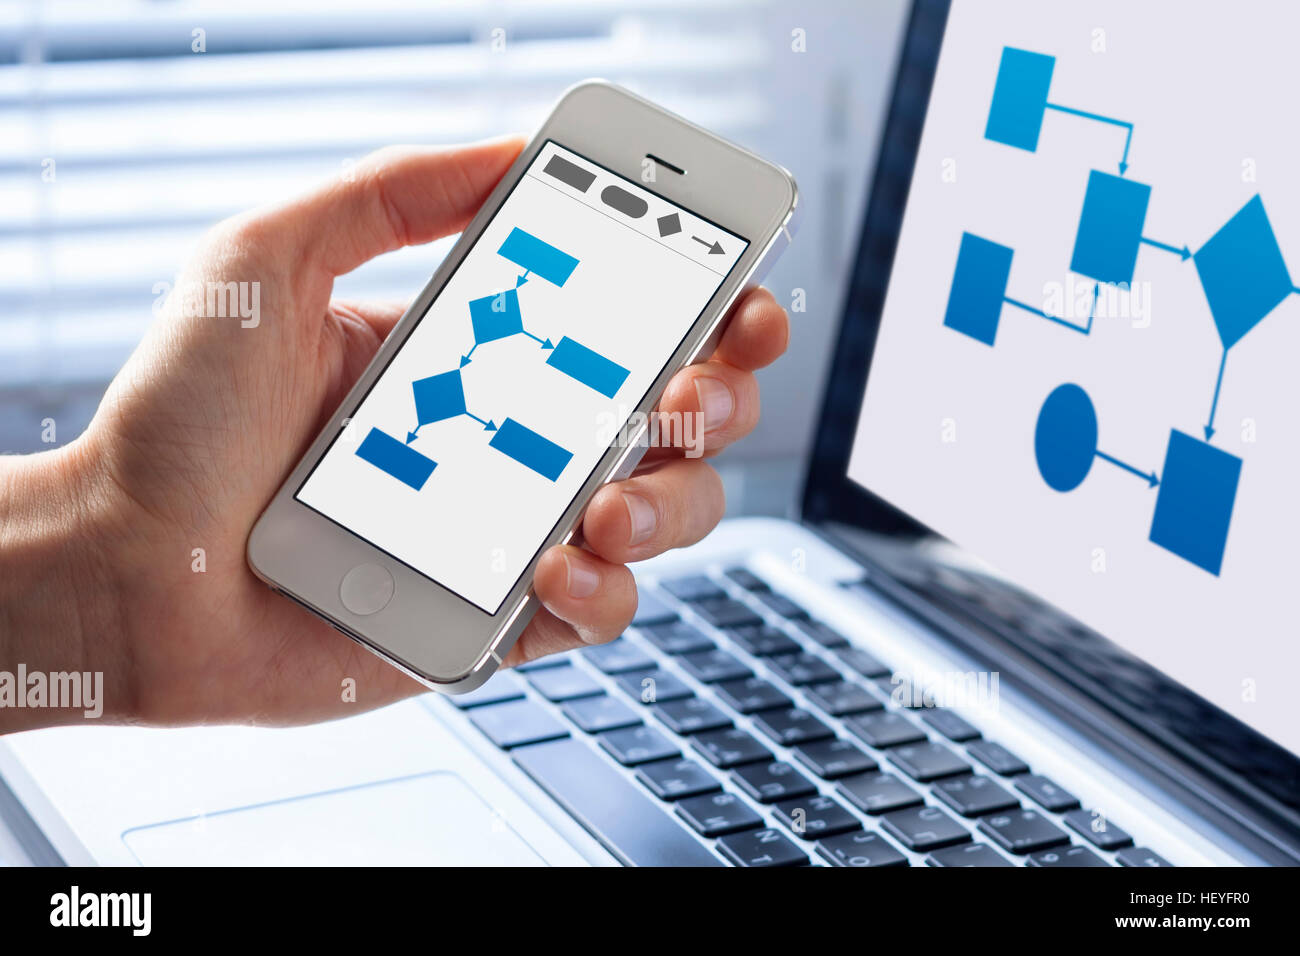 Businessman designing business process management and workflow automation with flowchart on smartphone and laptop - Stock Image